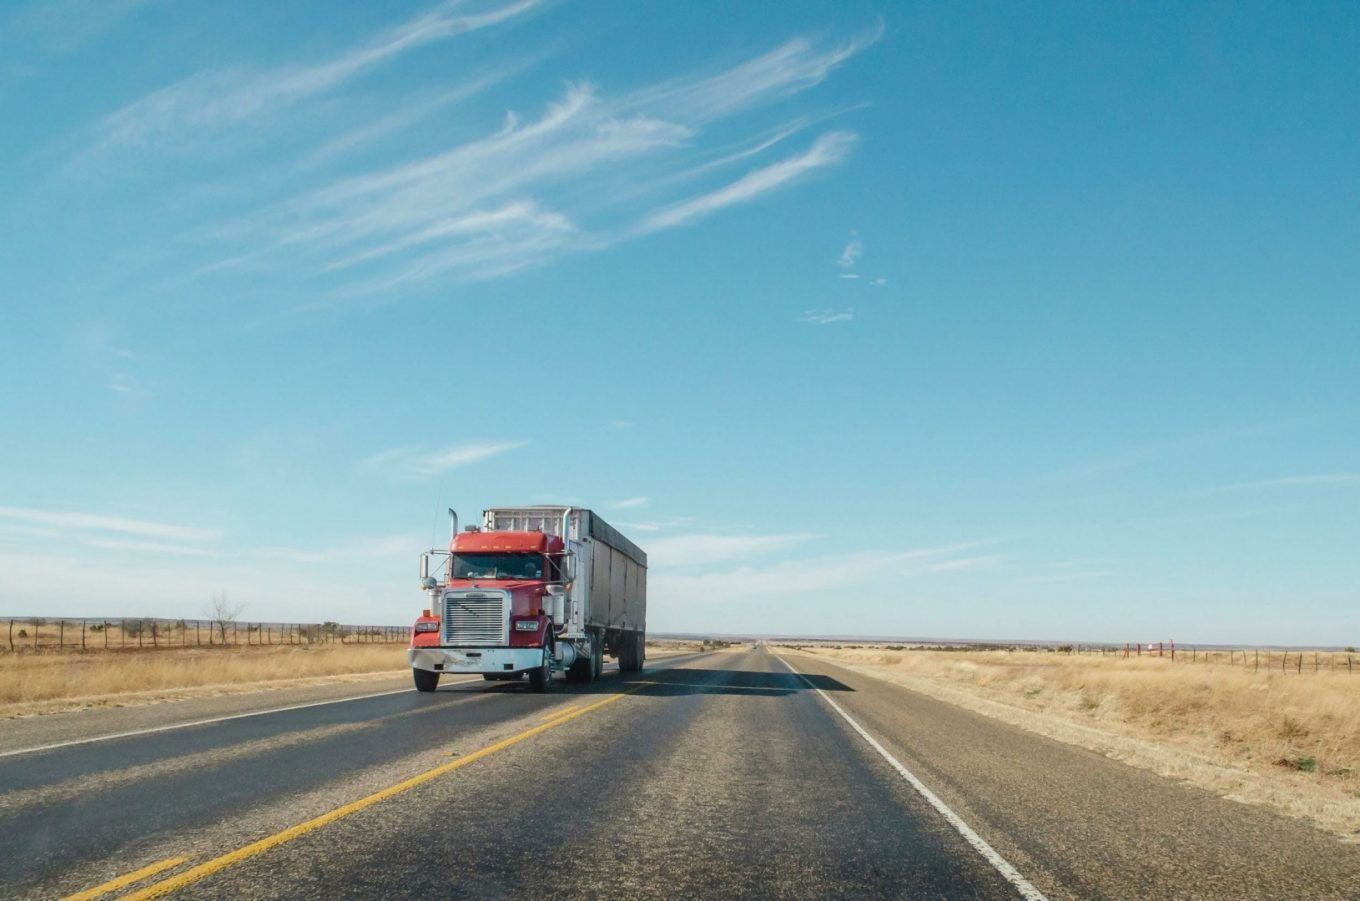 Commercial Trucking Driver Requirements and How They Can Affect Your Claim